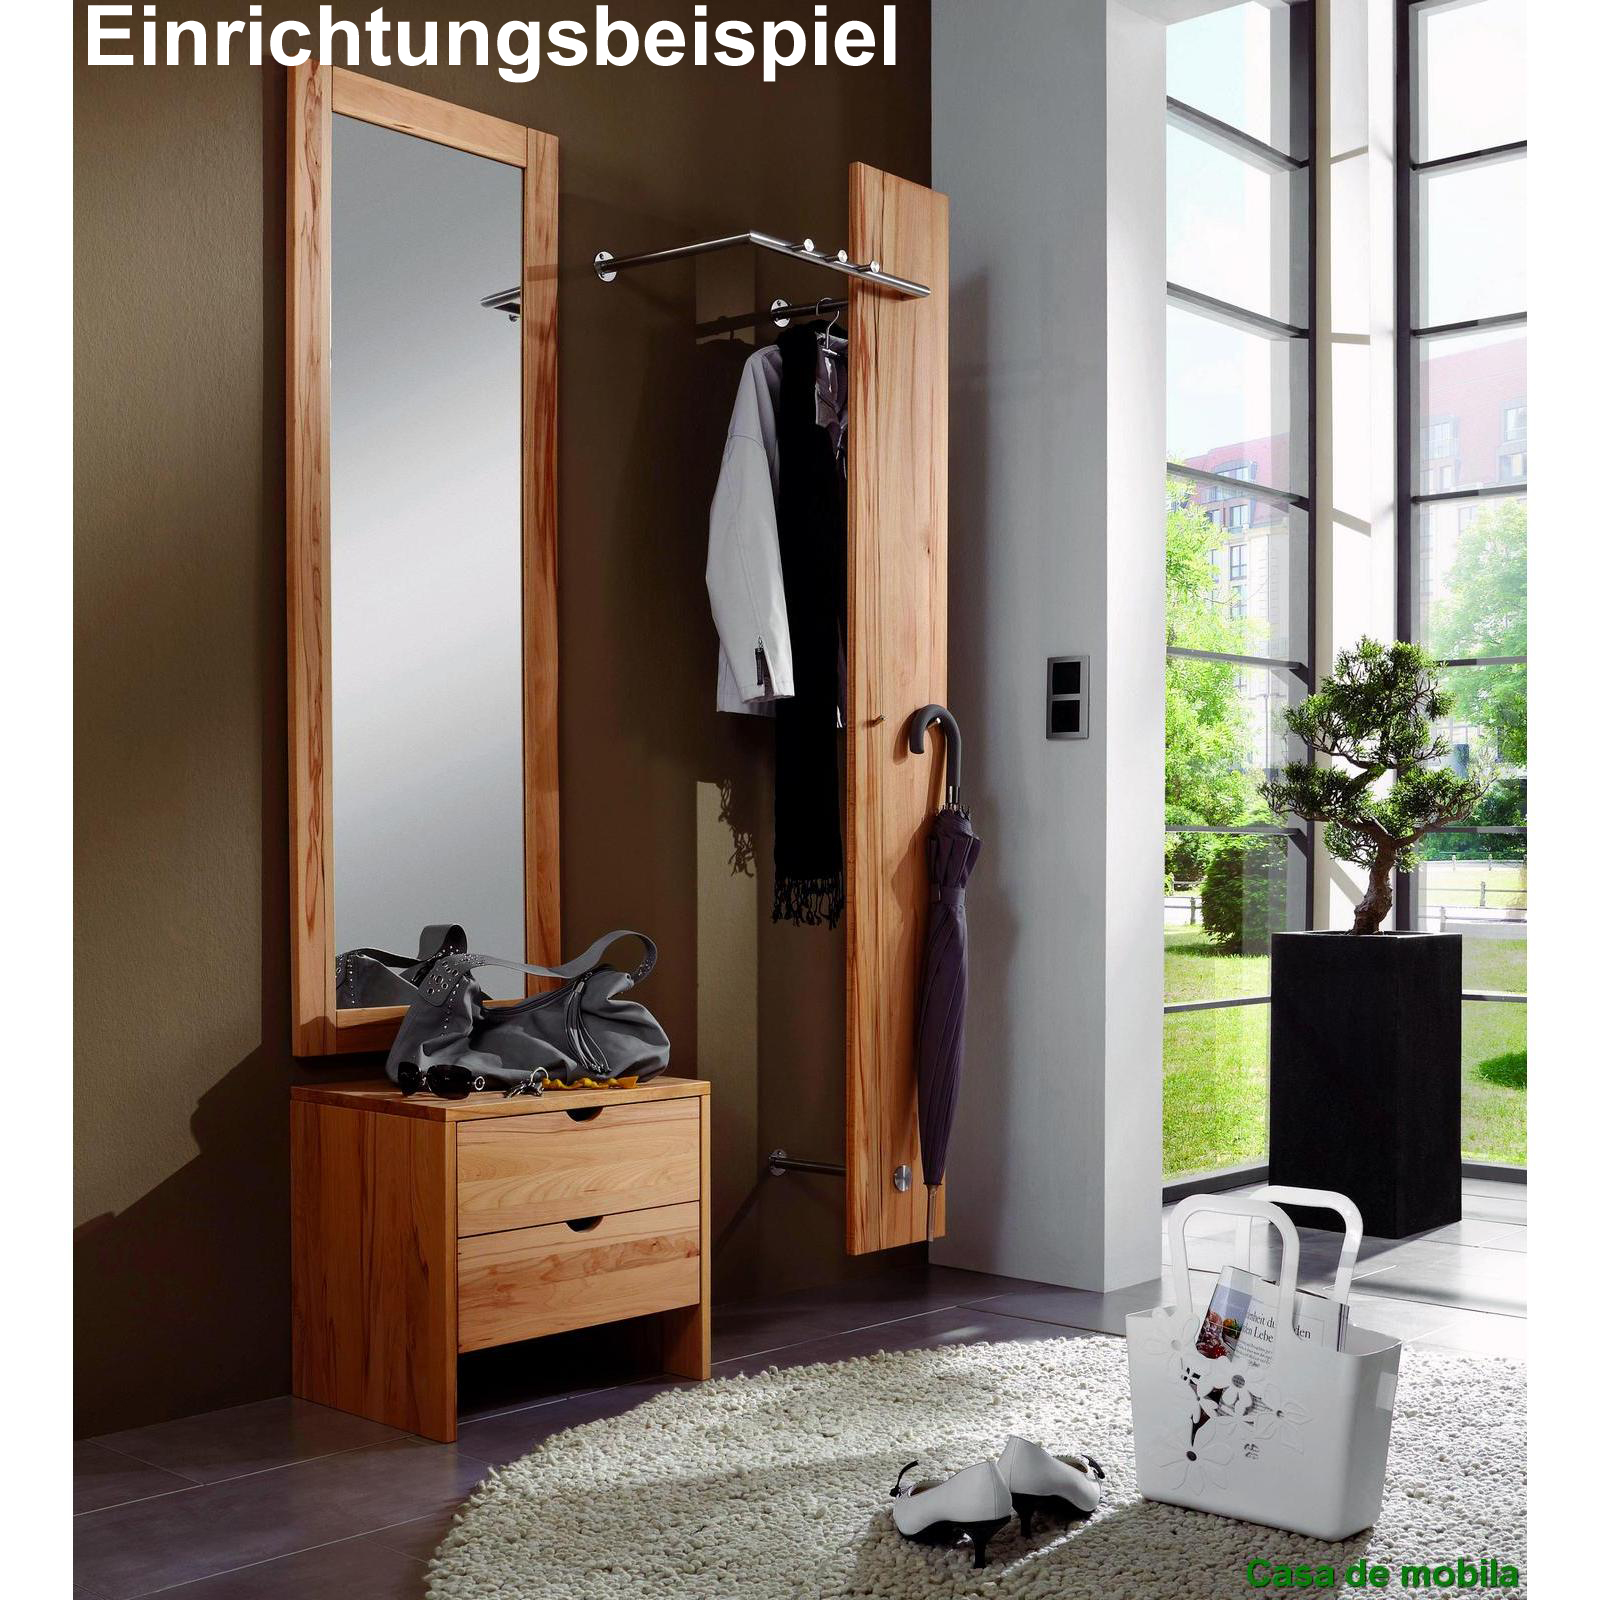 massivholz wandspiegel kernbuche natur ge lt take it. Black Bedroom Furniture Sets. Home Design Ideas